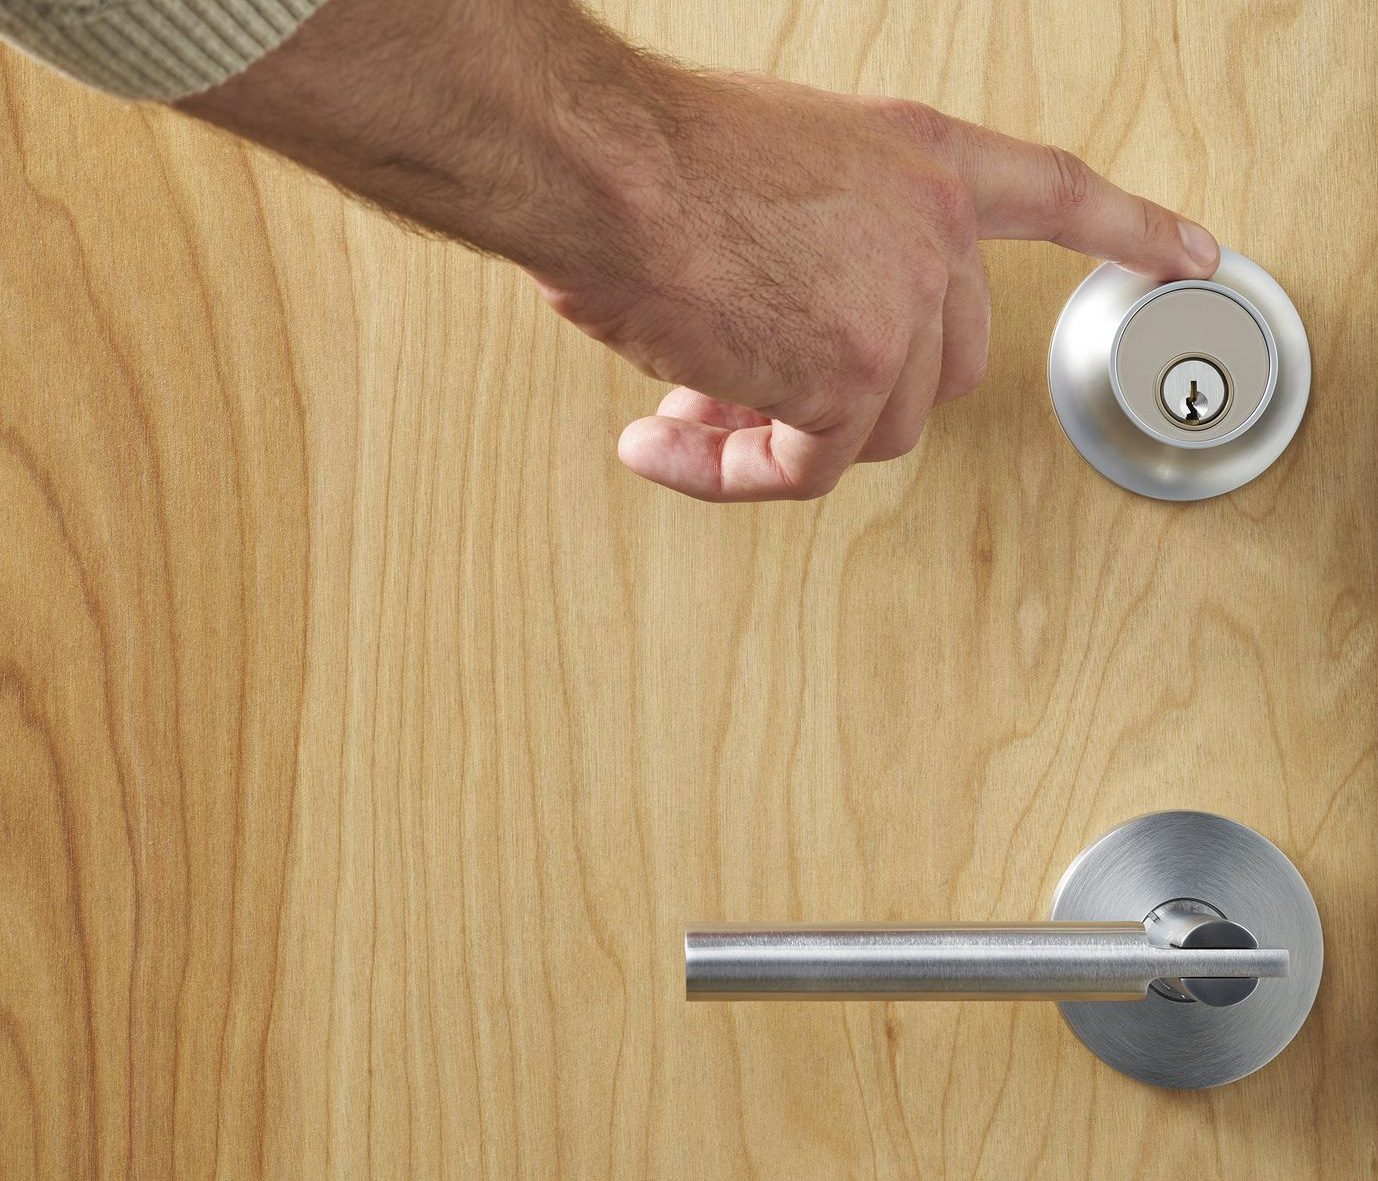 The Touch Lock from Level Lets You In Key-free at werd.com